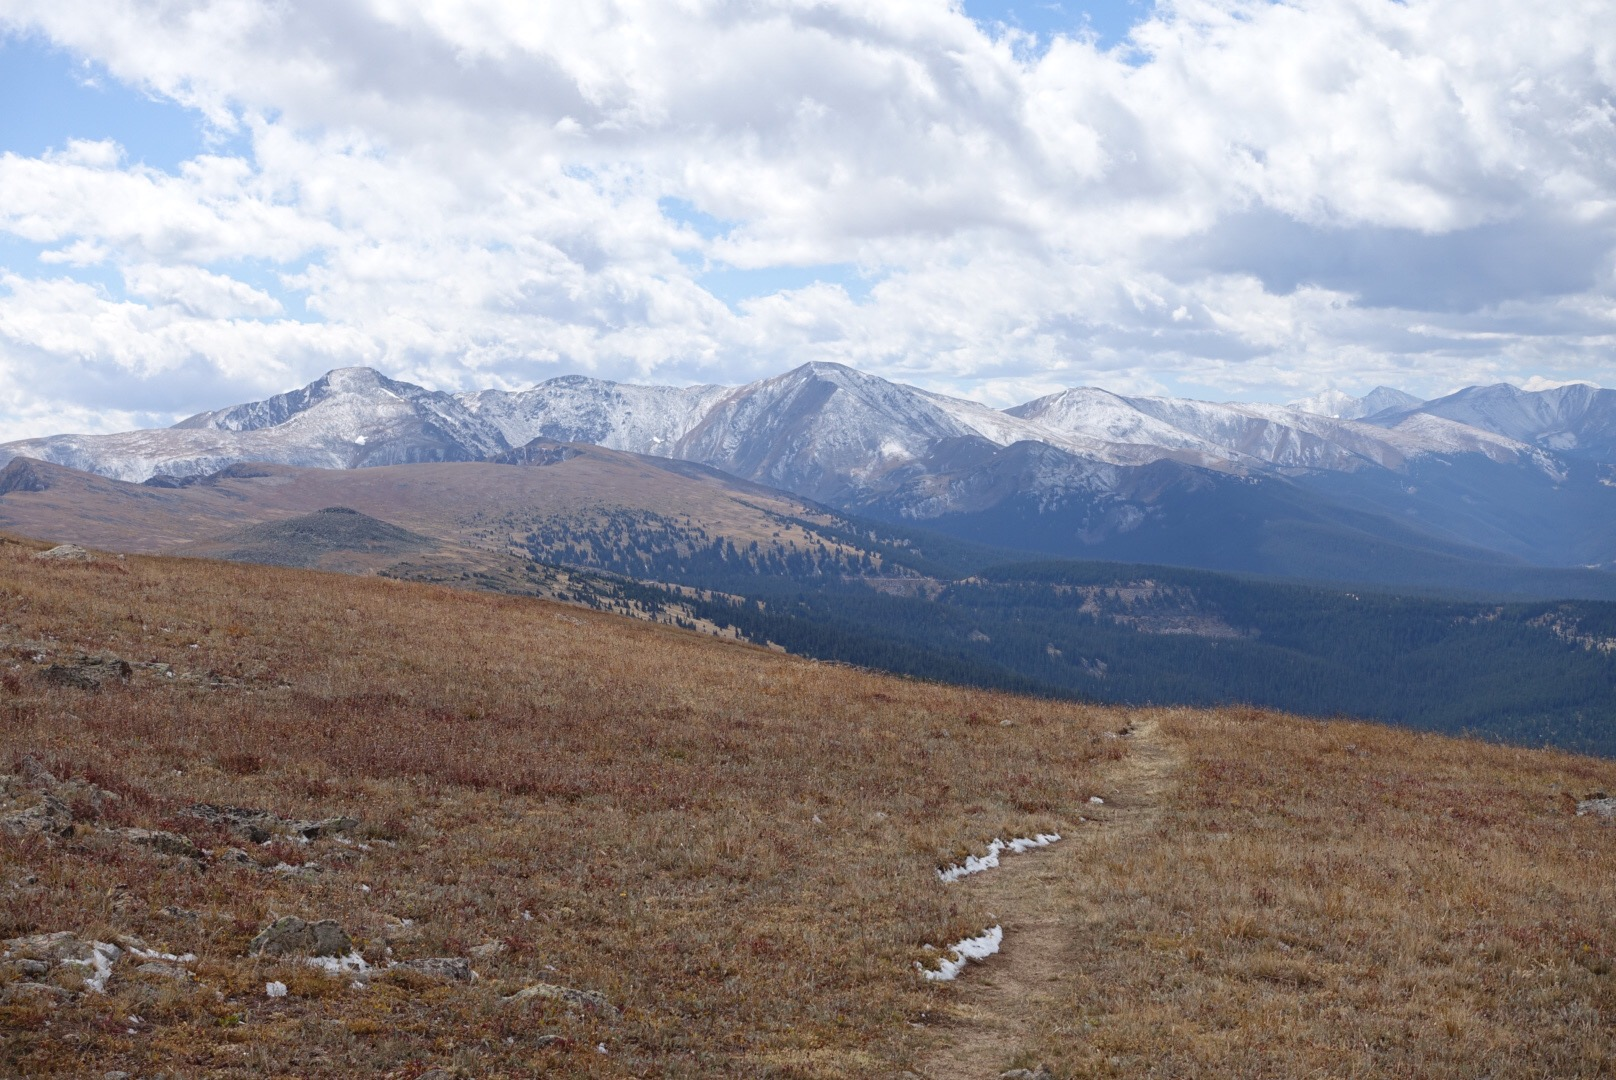 Rocky Mountain National Park (Grand Lake, CO) to Indian Peaks Wilderness (Winter Park, CO)